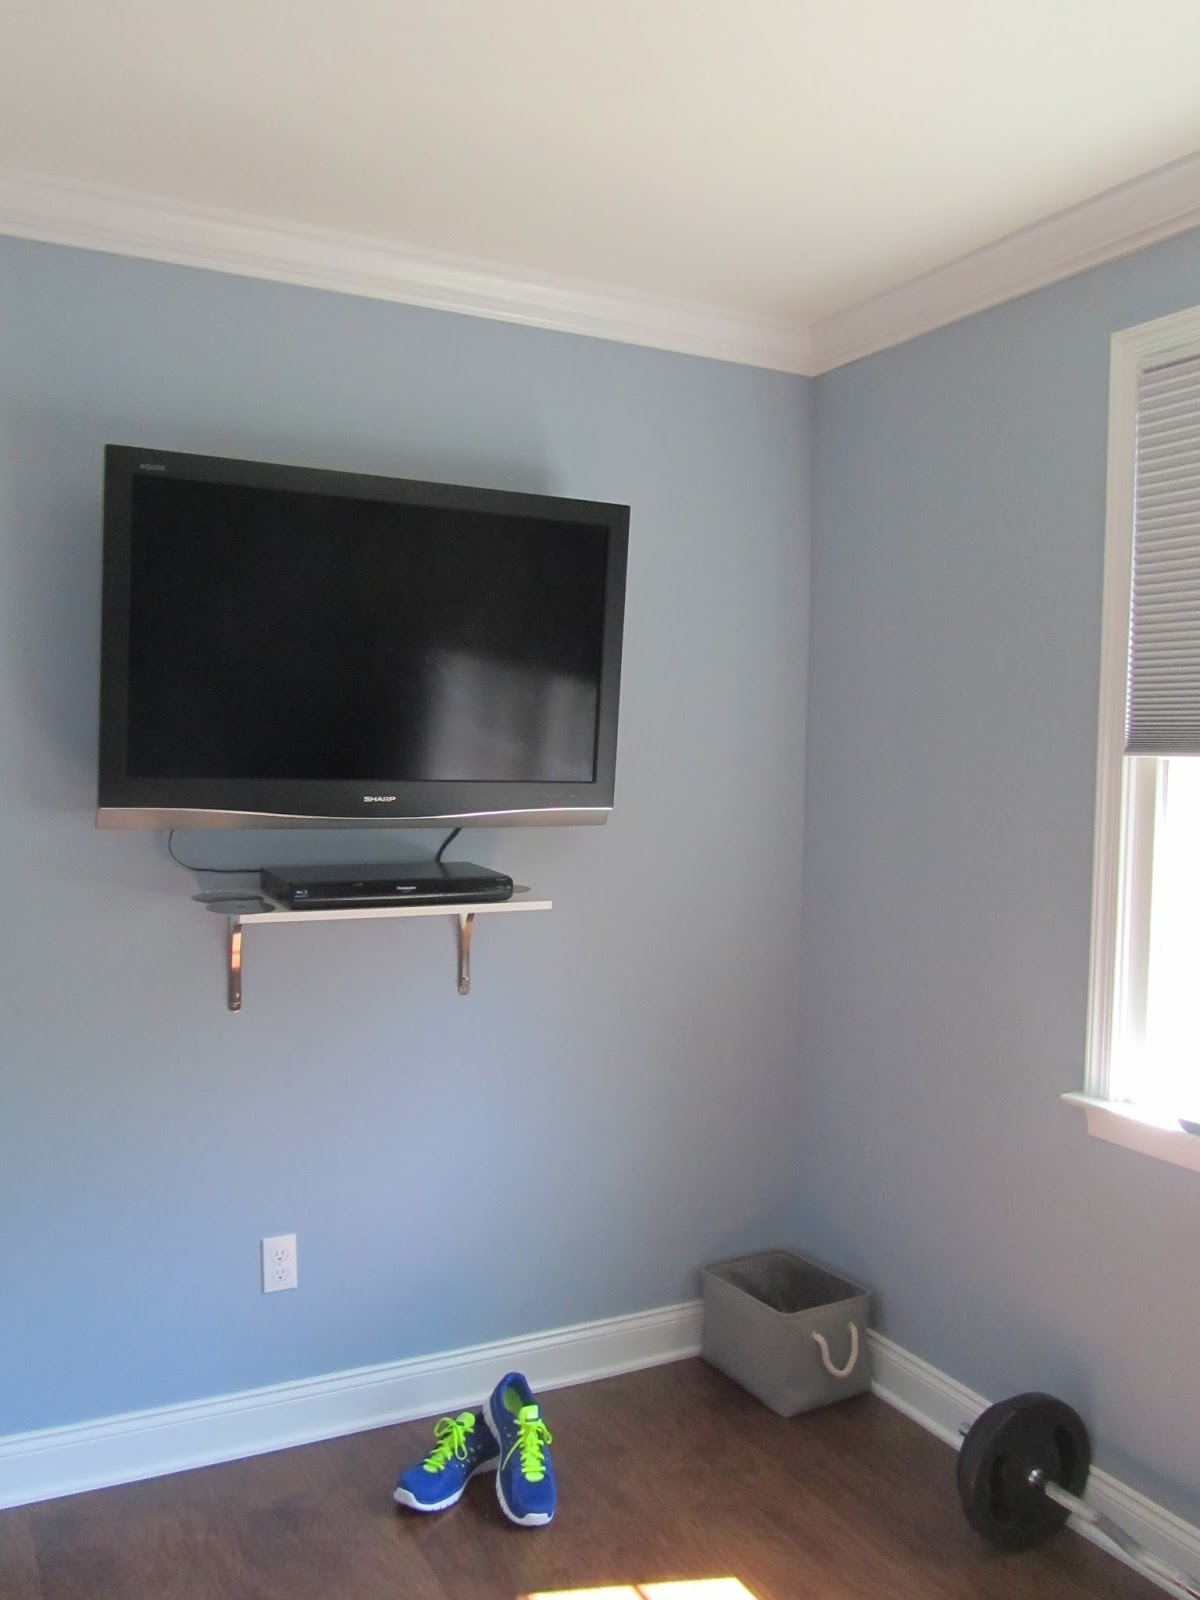 Dress Amp Home Our Home Gym Renovation And Welcome To Dress